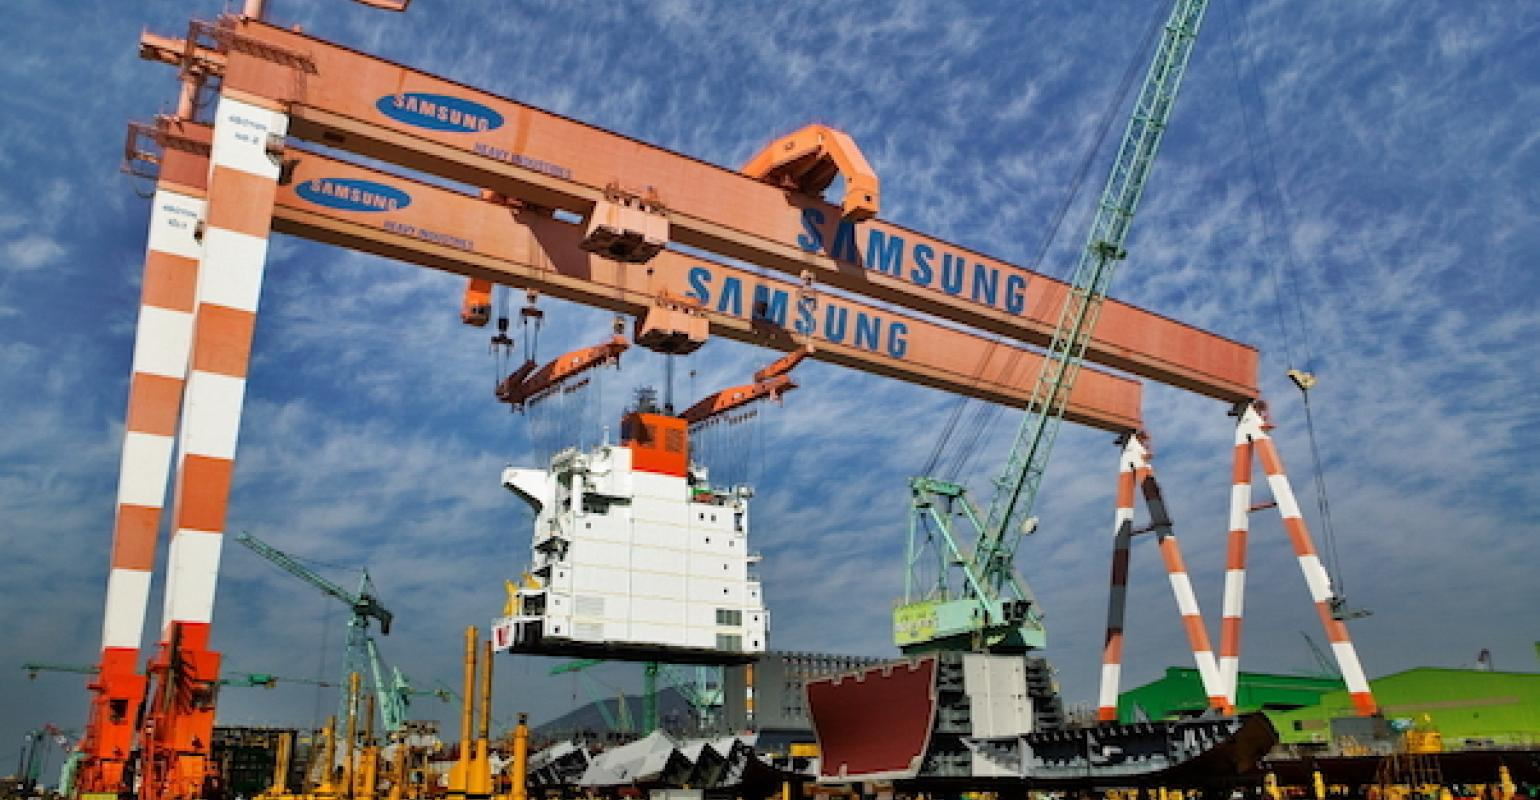 Samsung Heavy Industries wins $1 billion deals this week